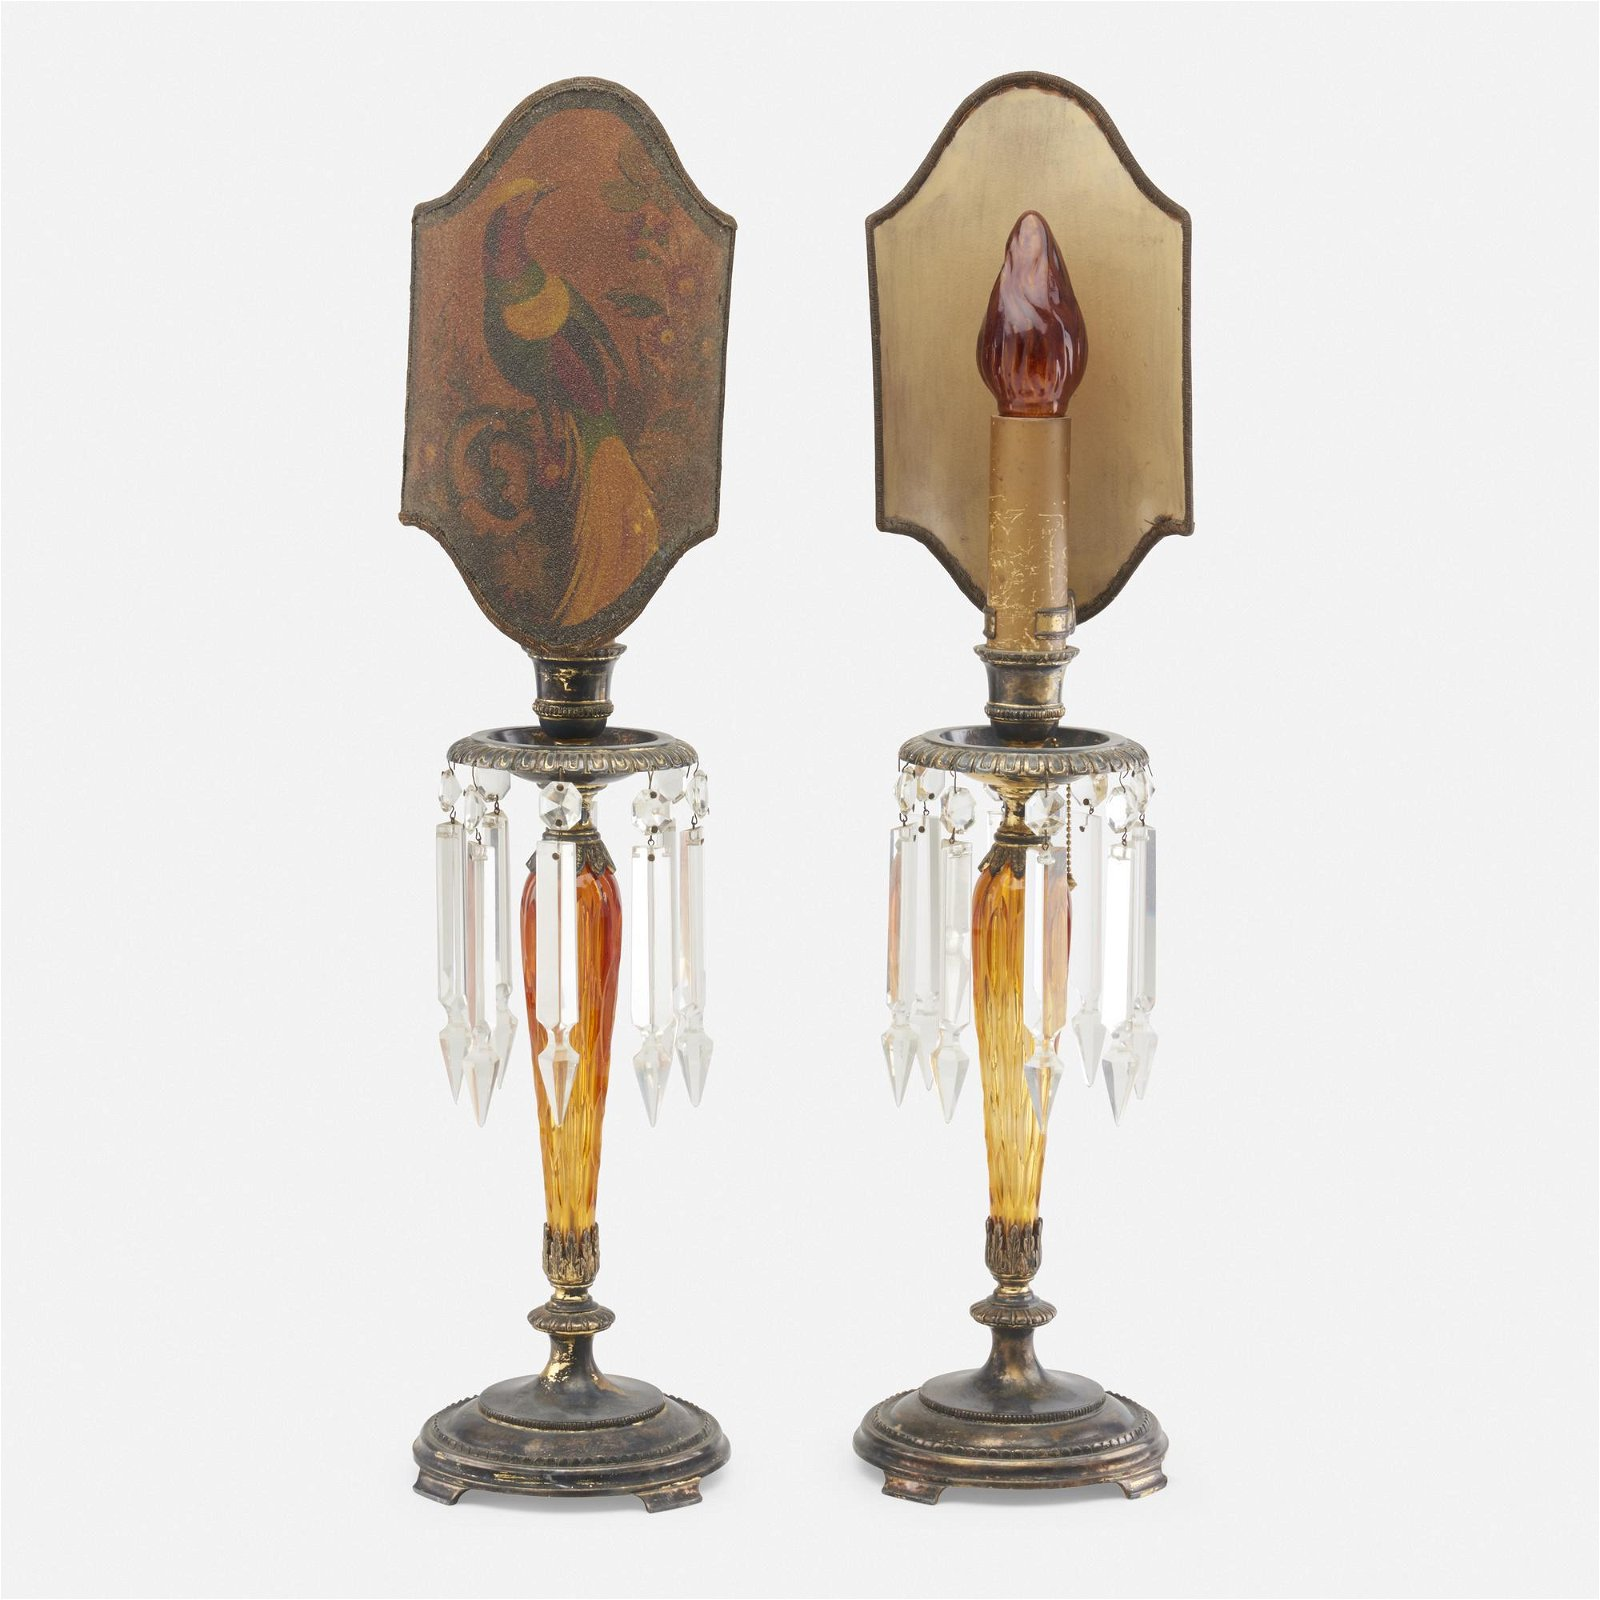 Pairpoint, candlestick lamps, pair